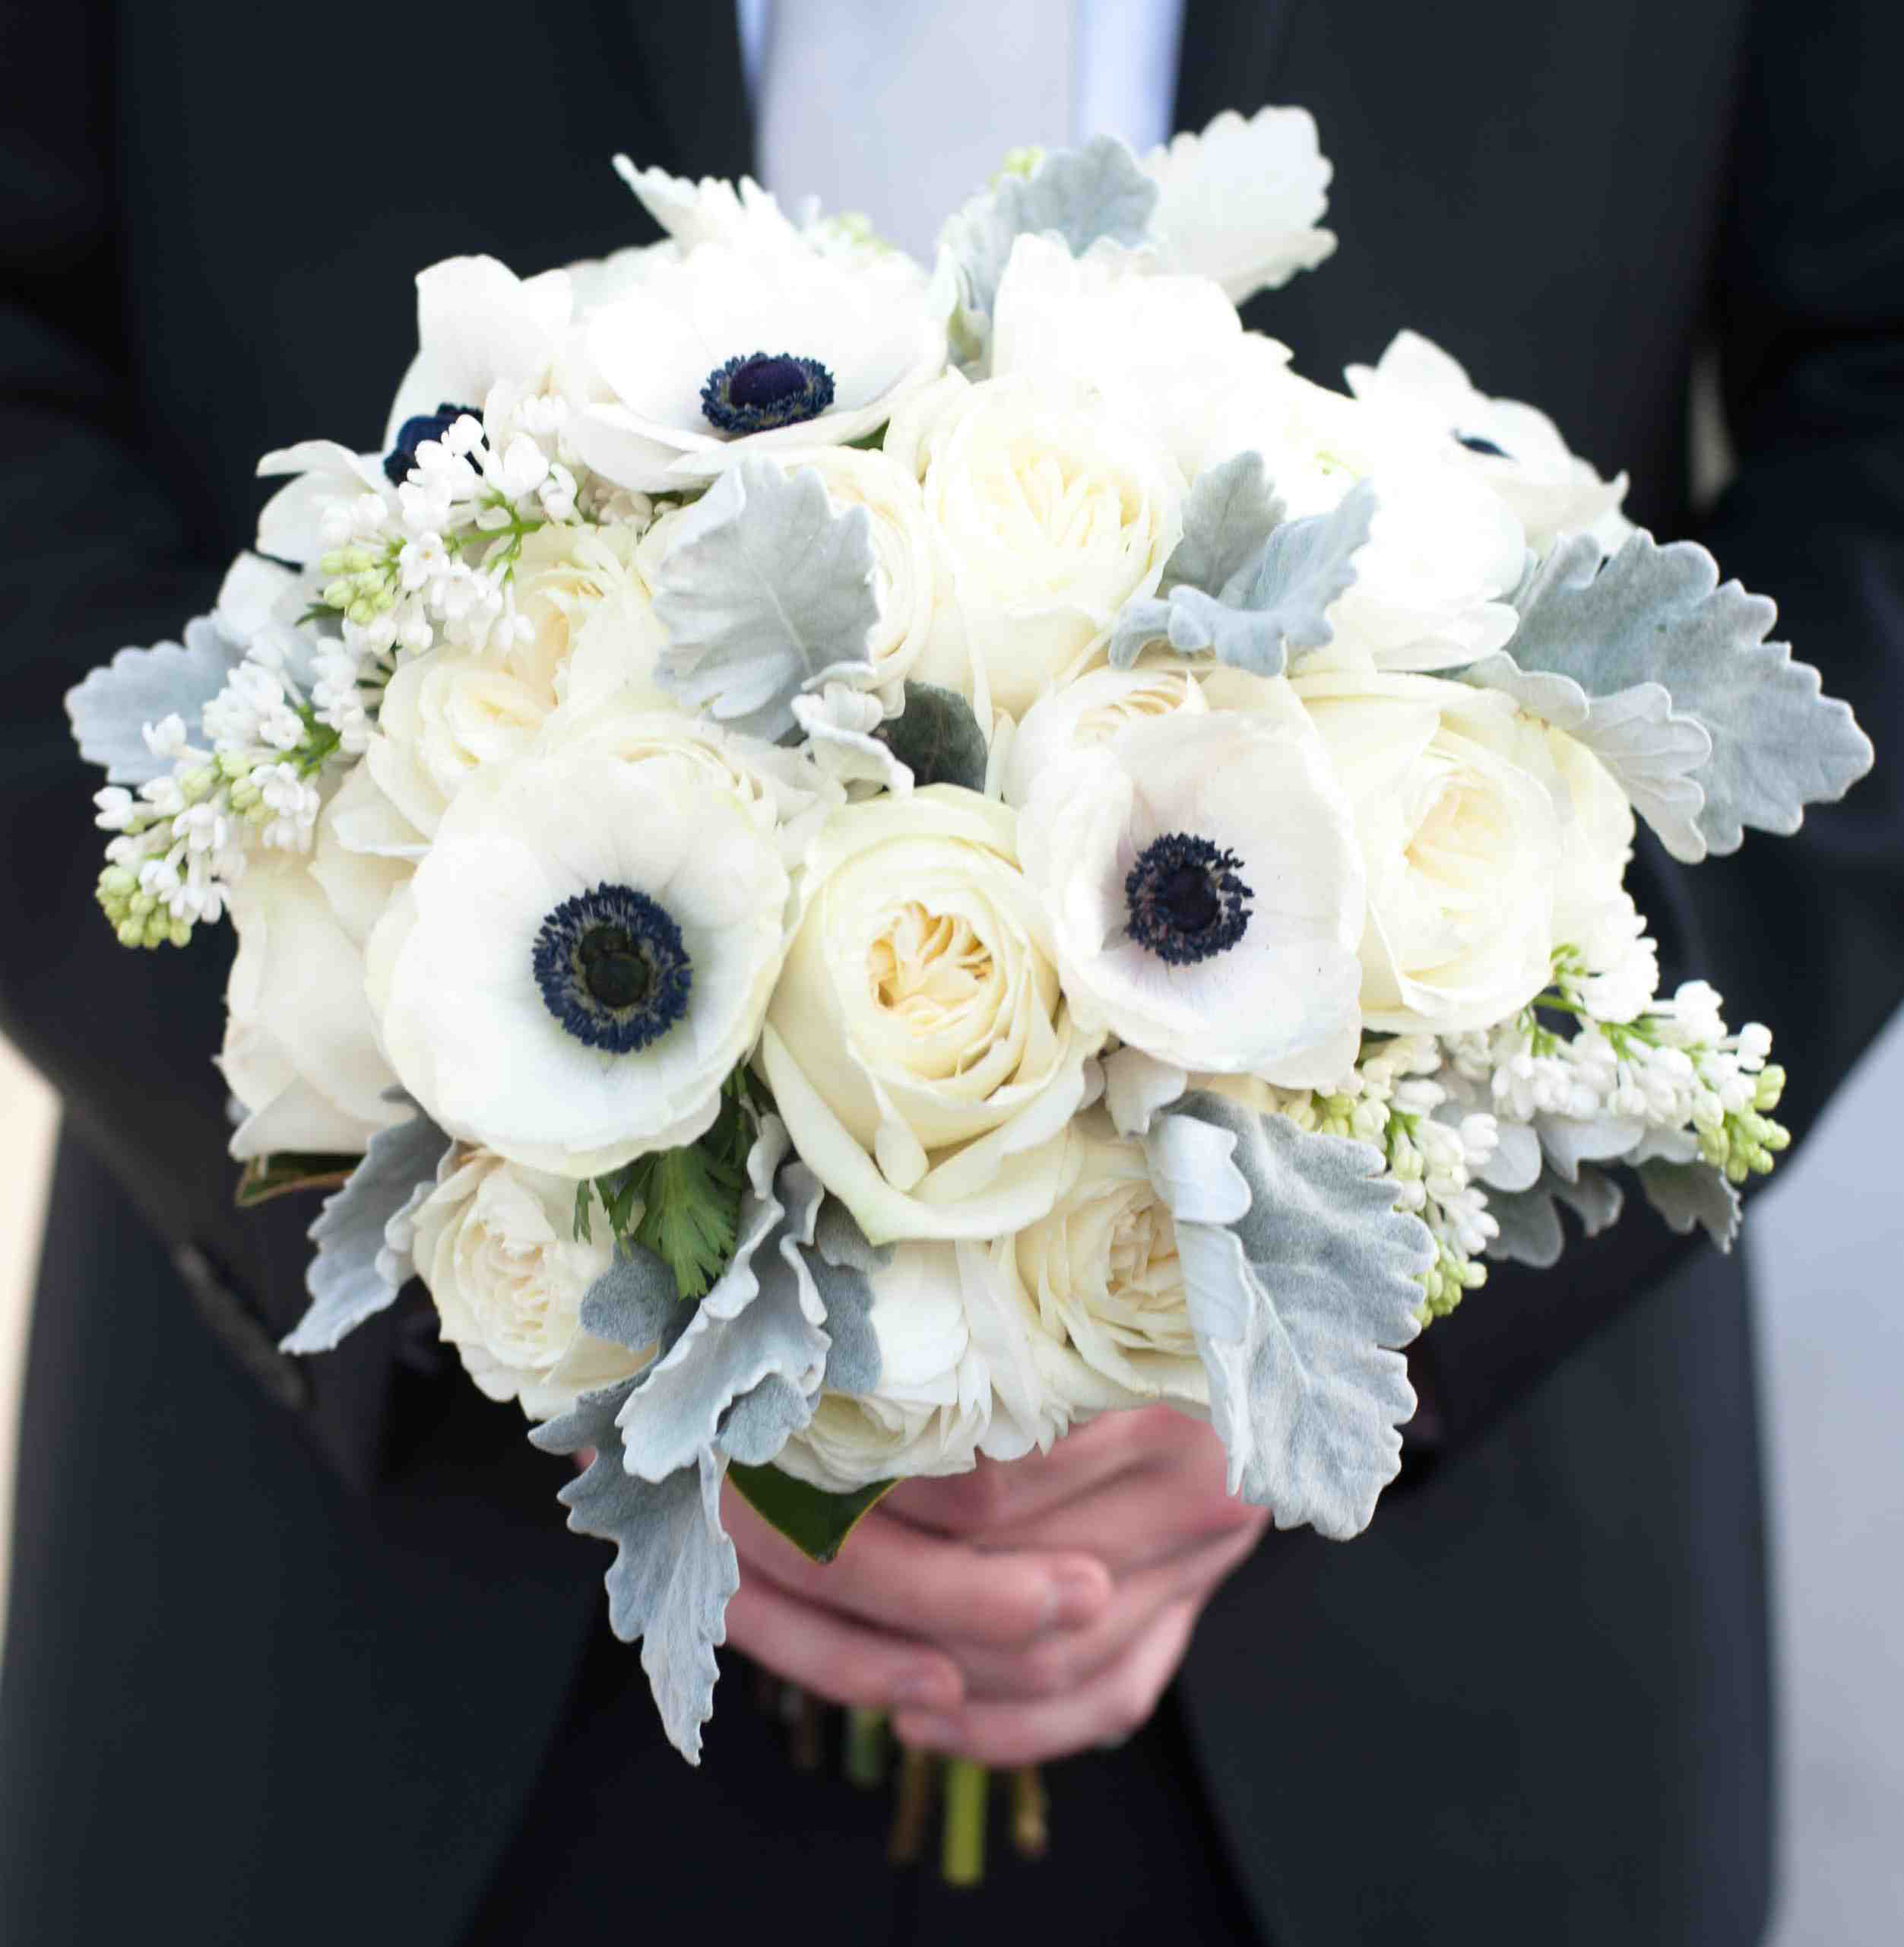 Best Flowers For Winter Wedding: Wedding Ideas: 15 Bouquet Ideas For A Winter Ceremony